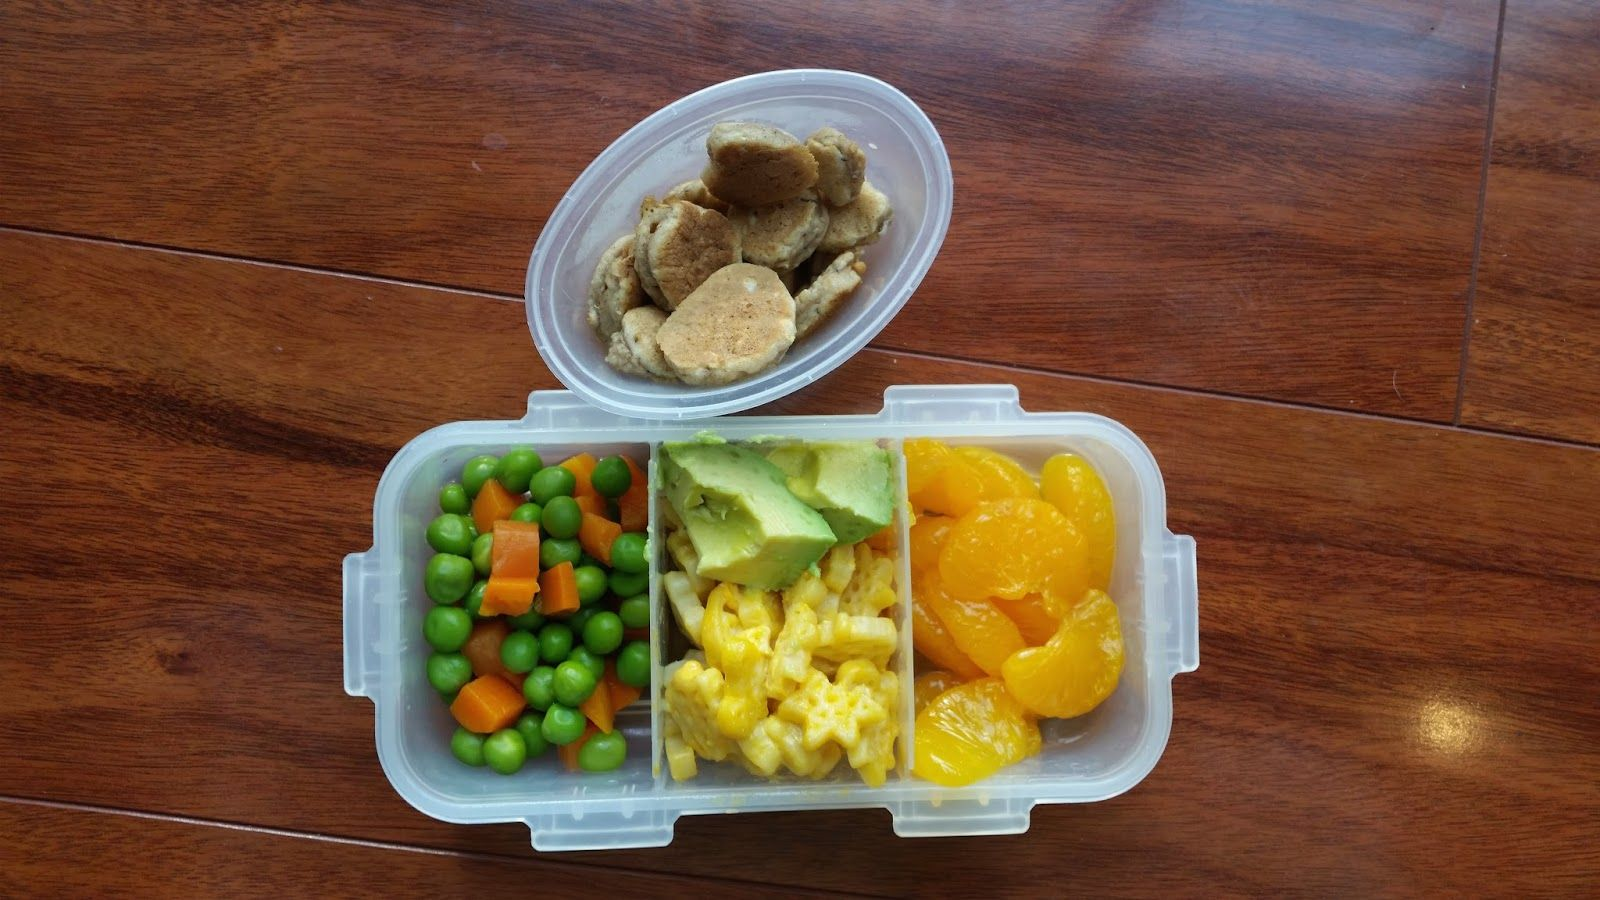 packed lunches for baby - june 15 | Baby lunch, Baby food ...